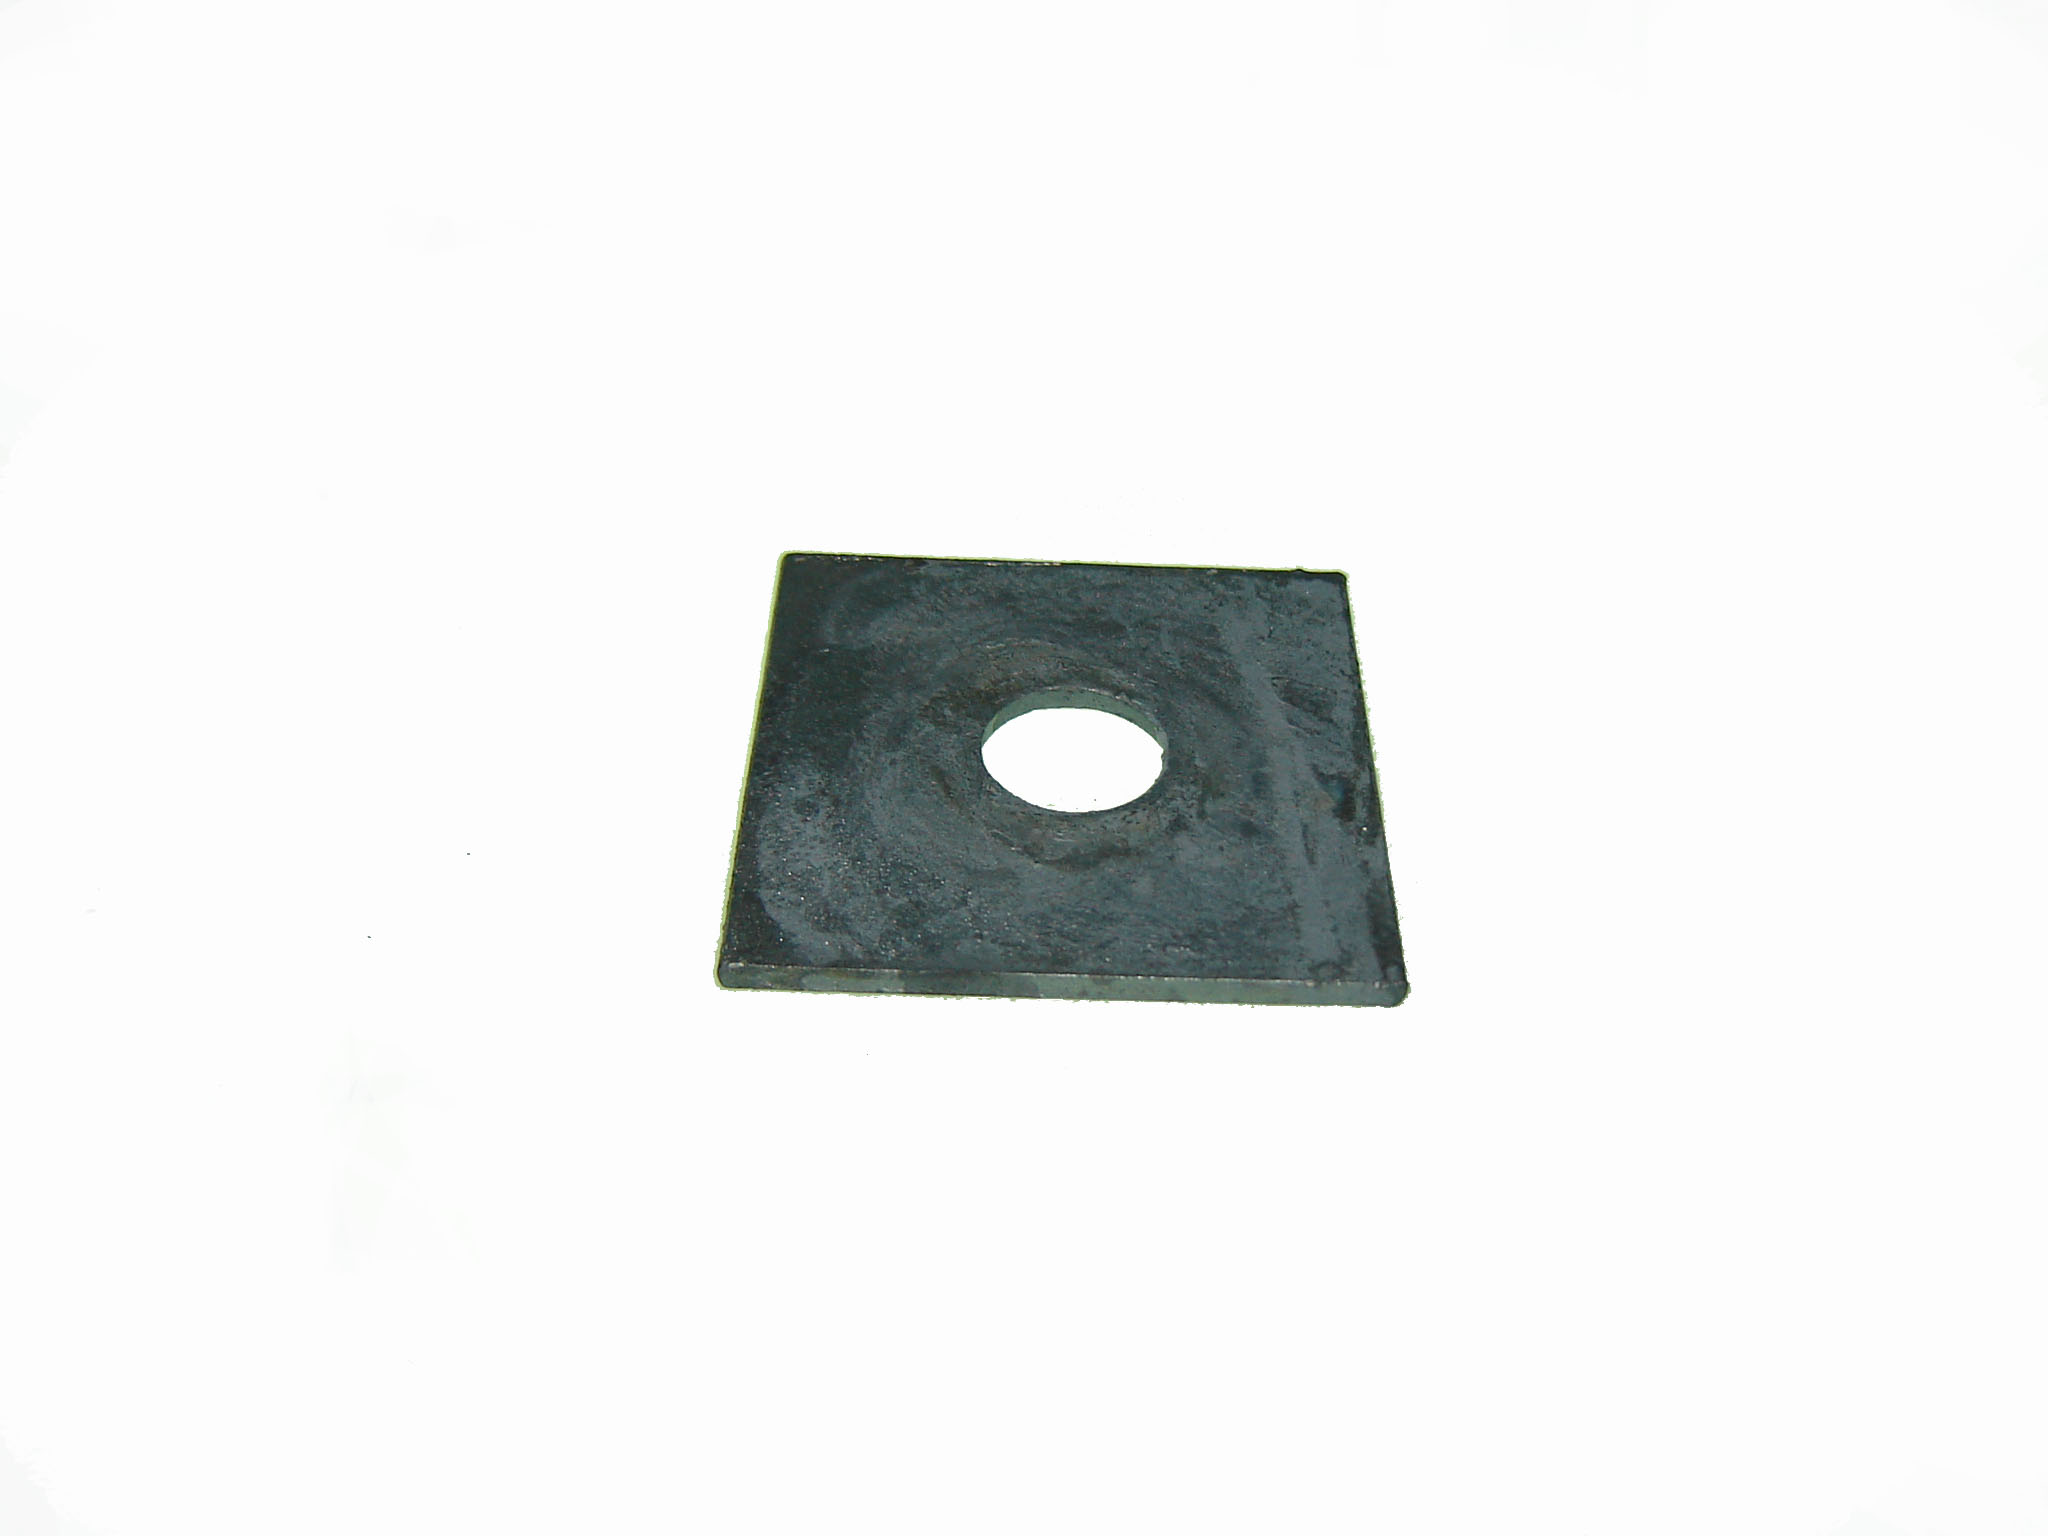 WASHER 1/4 THK  sc 1 st  Florida Tool \u0026 Fastener : square plate washer - pezcame.com